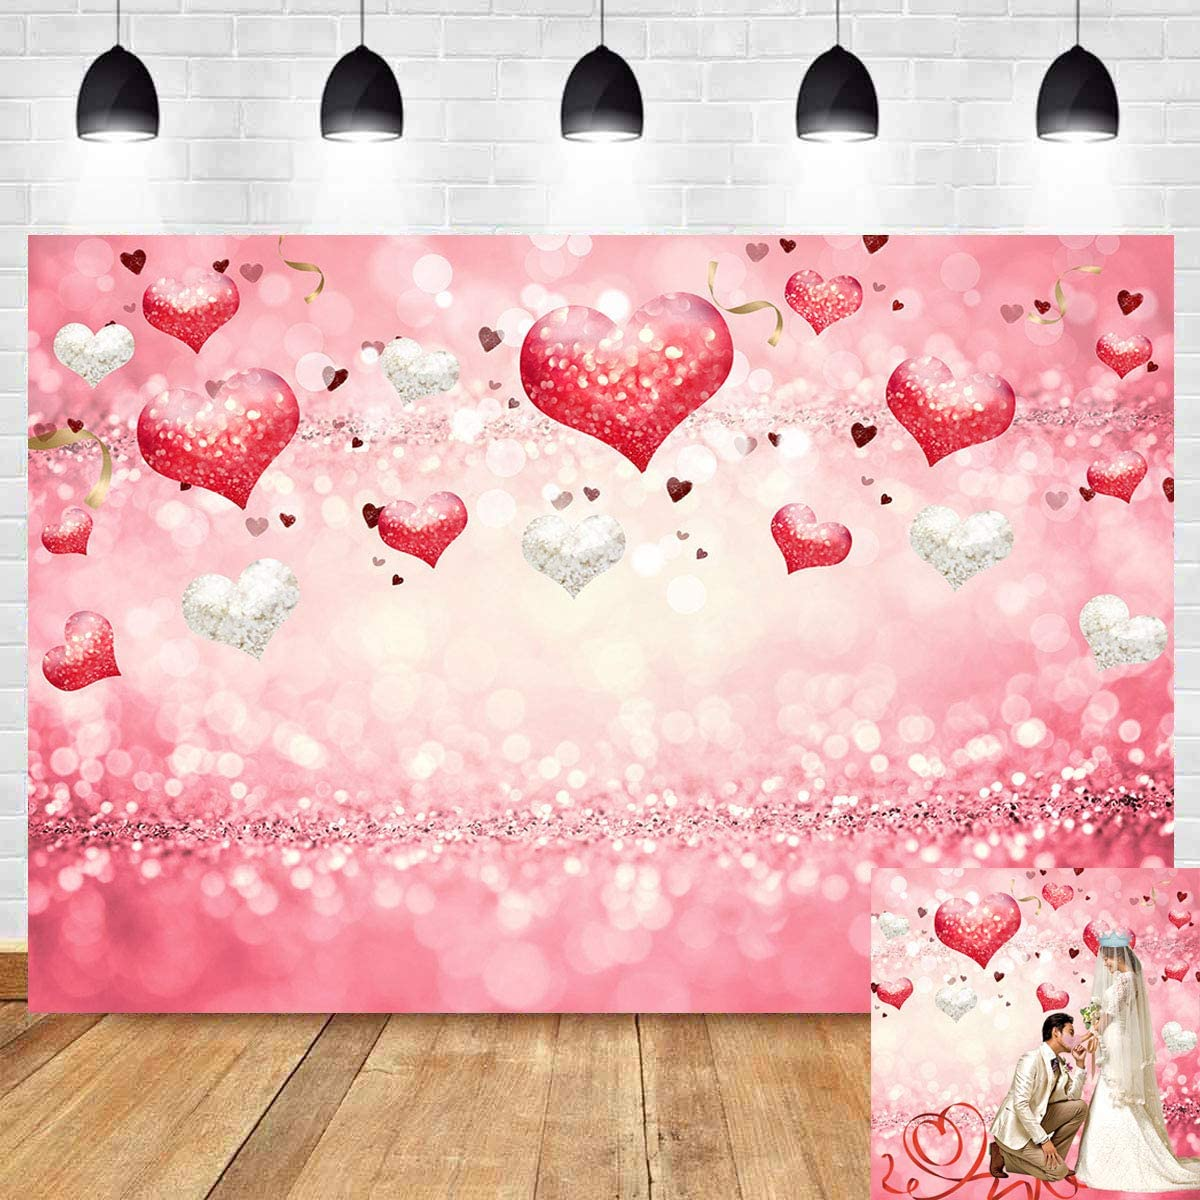 Valentines Fish Tank Backdrop Poster Doodle Style Hearts with Different Designs Romantic Inspirations for Art Baby Shower Backdrop Kids Children Birthday Party Black Red Pink L30 X H12 Inch